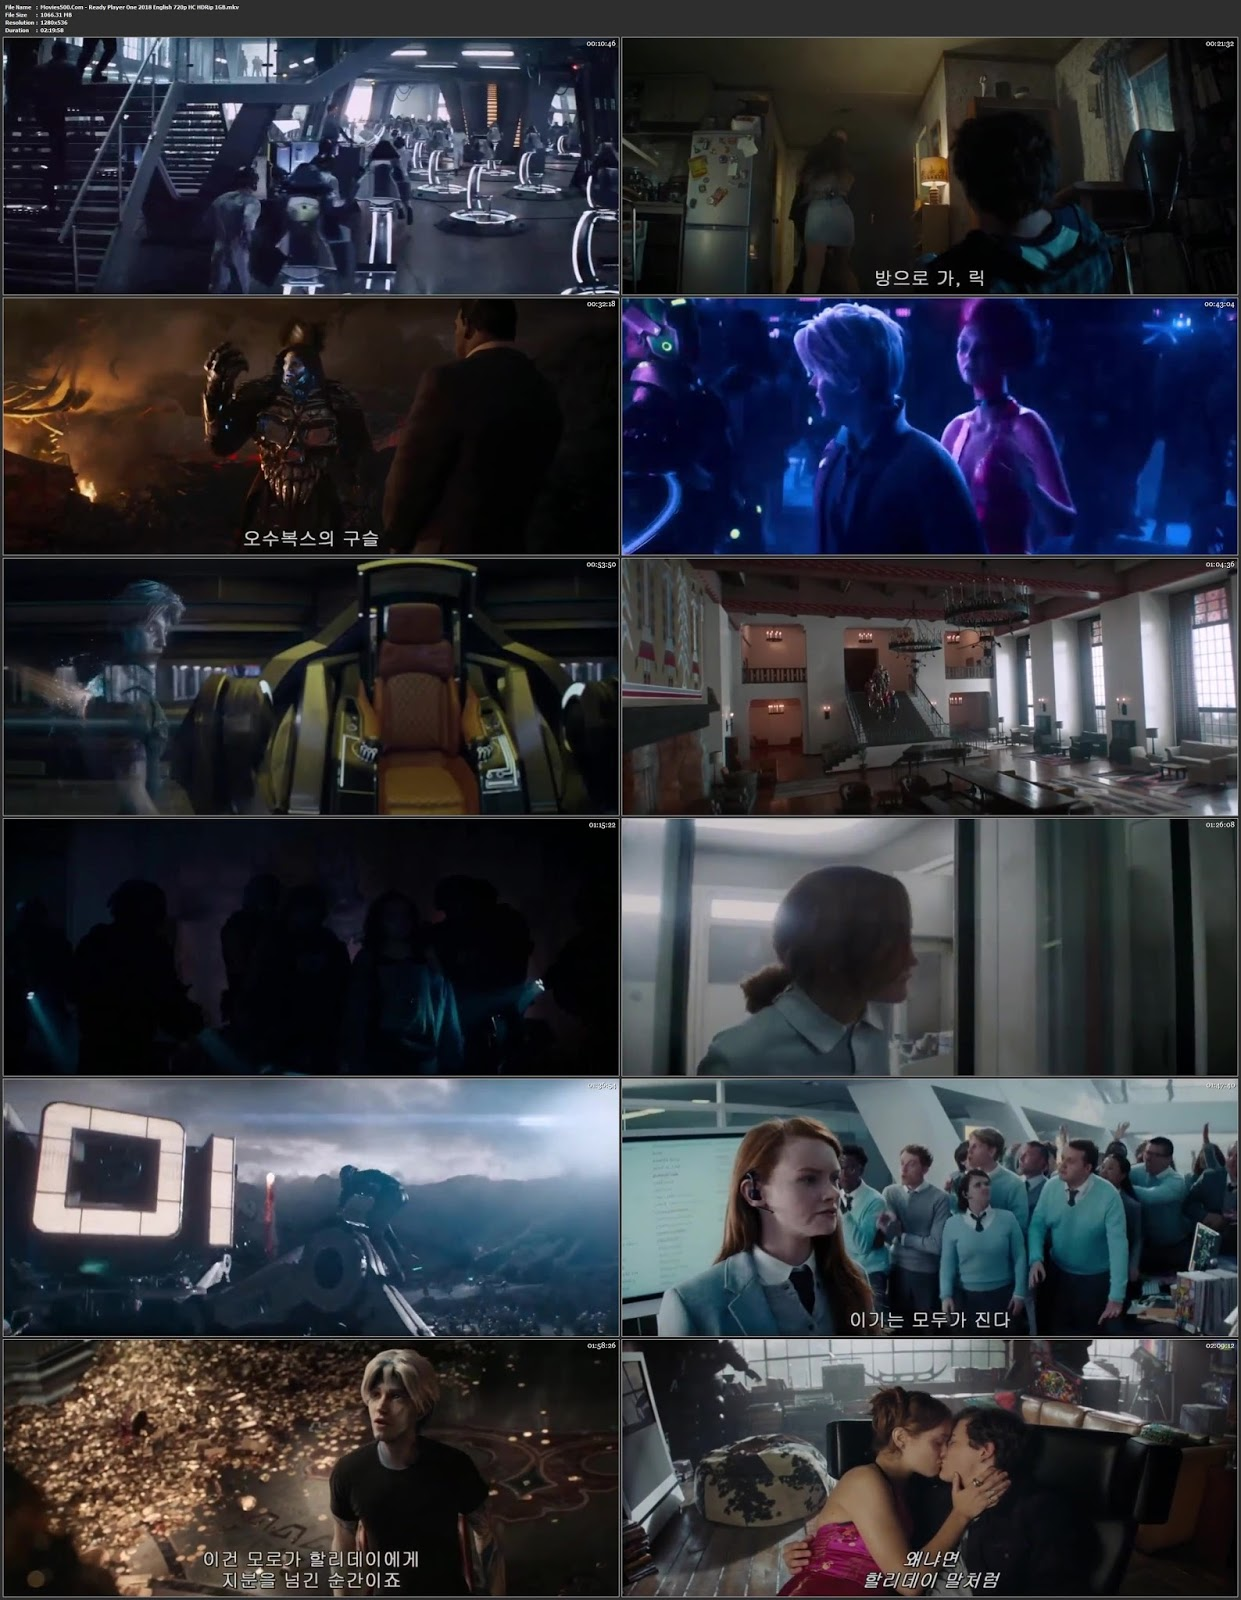 Ready Player One 2018 Hollywood 300MB HC HDRip 480p at 9966132.com